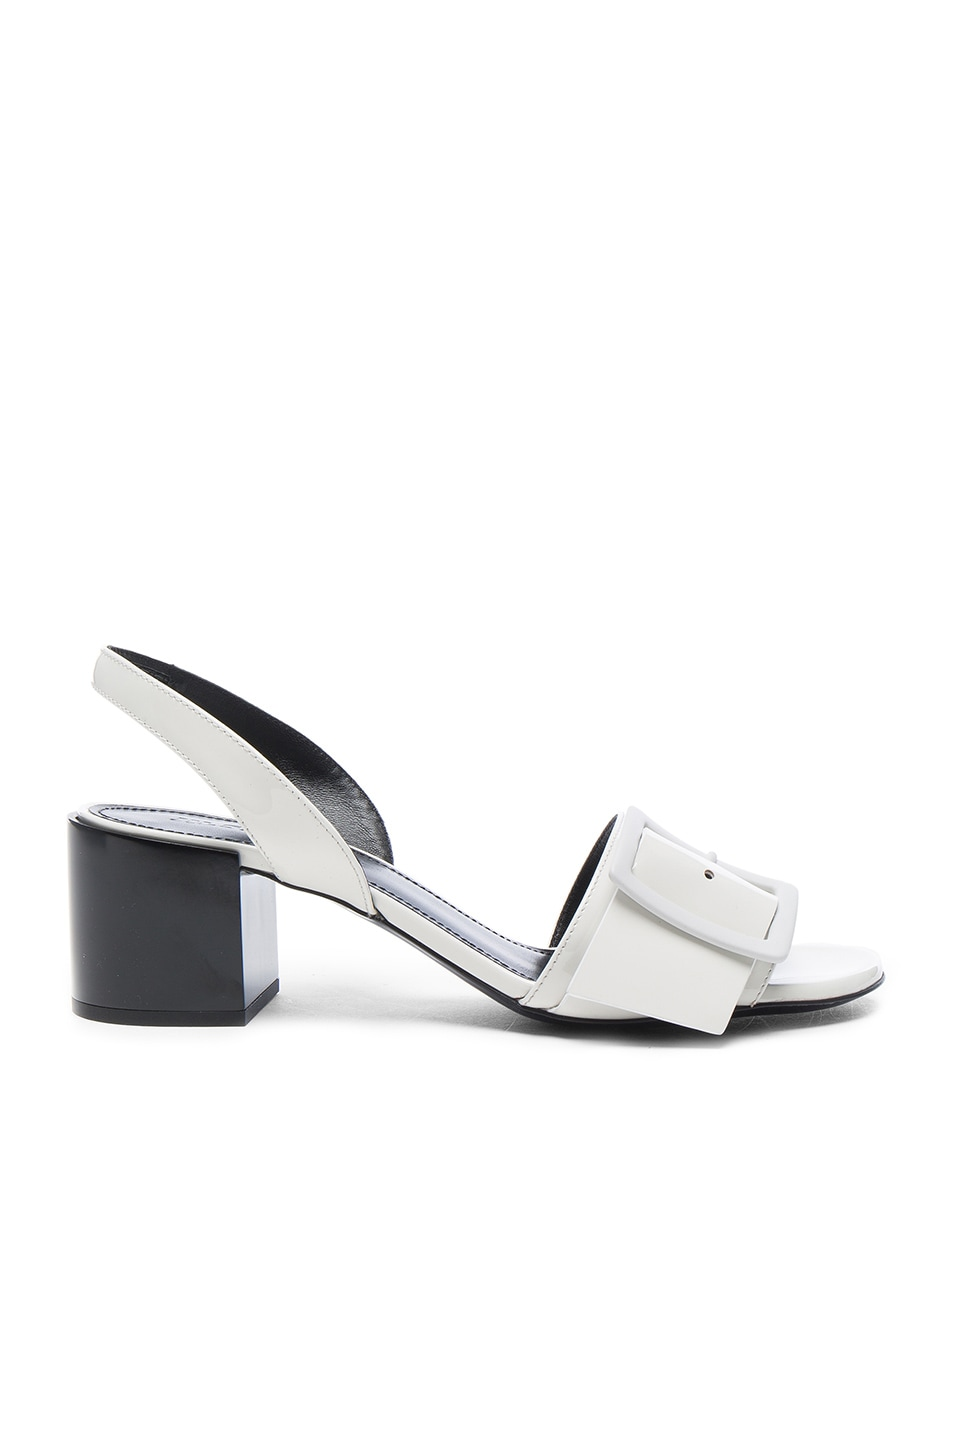 Image 1 of Jil Sander Patent Leather Heels in Riso & Nero